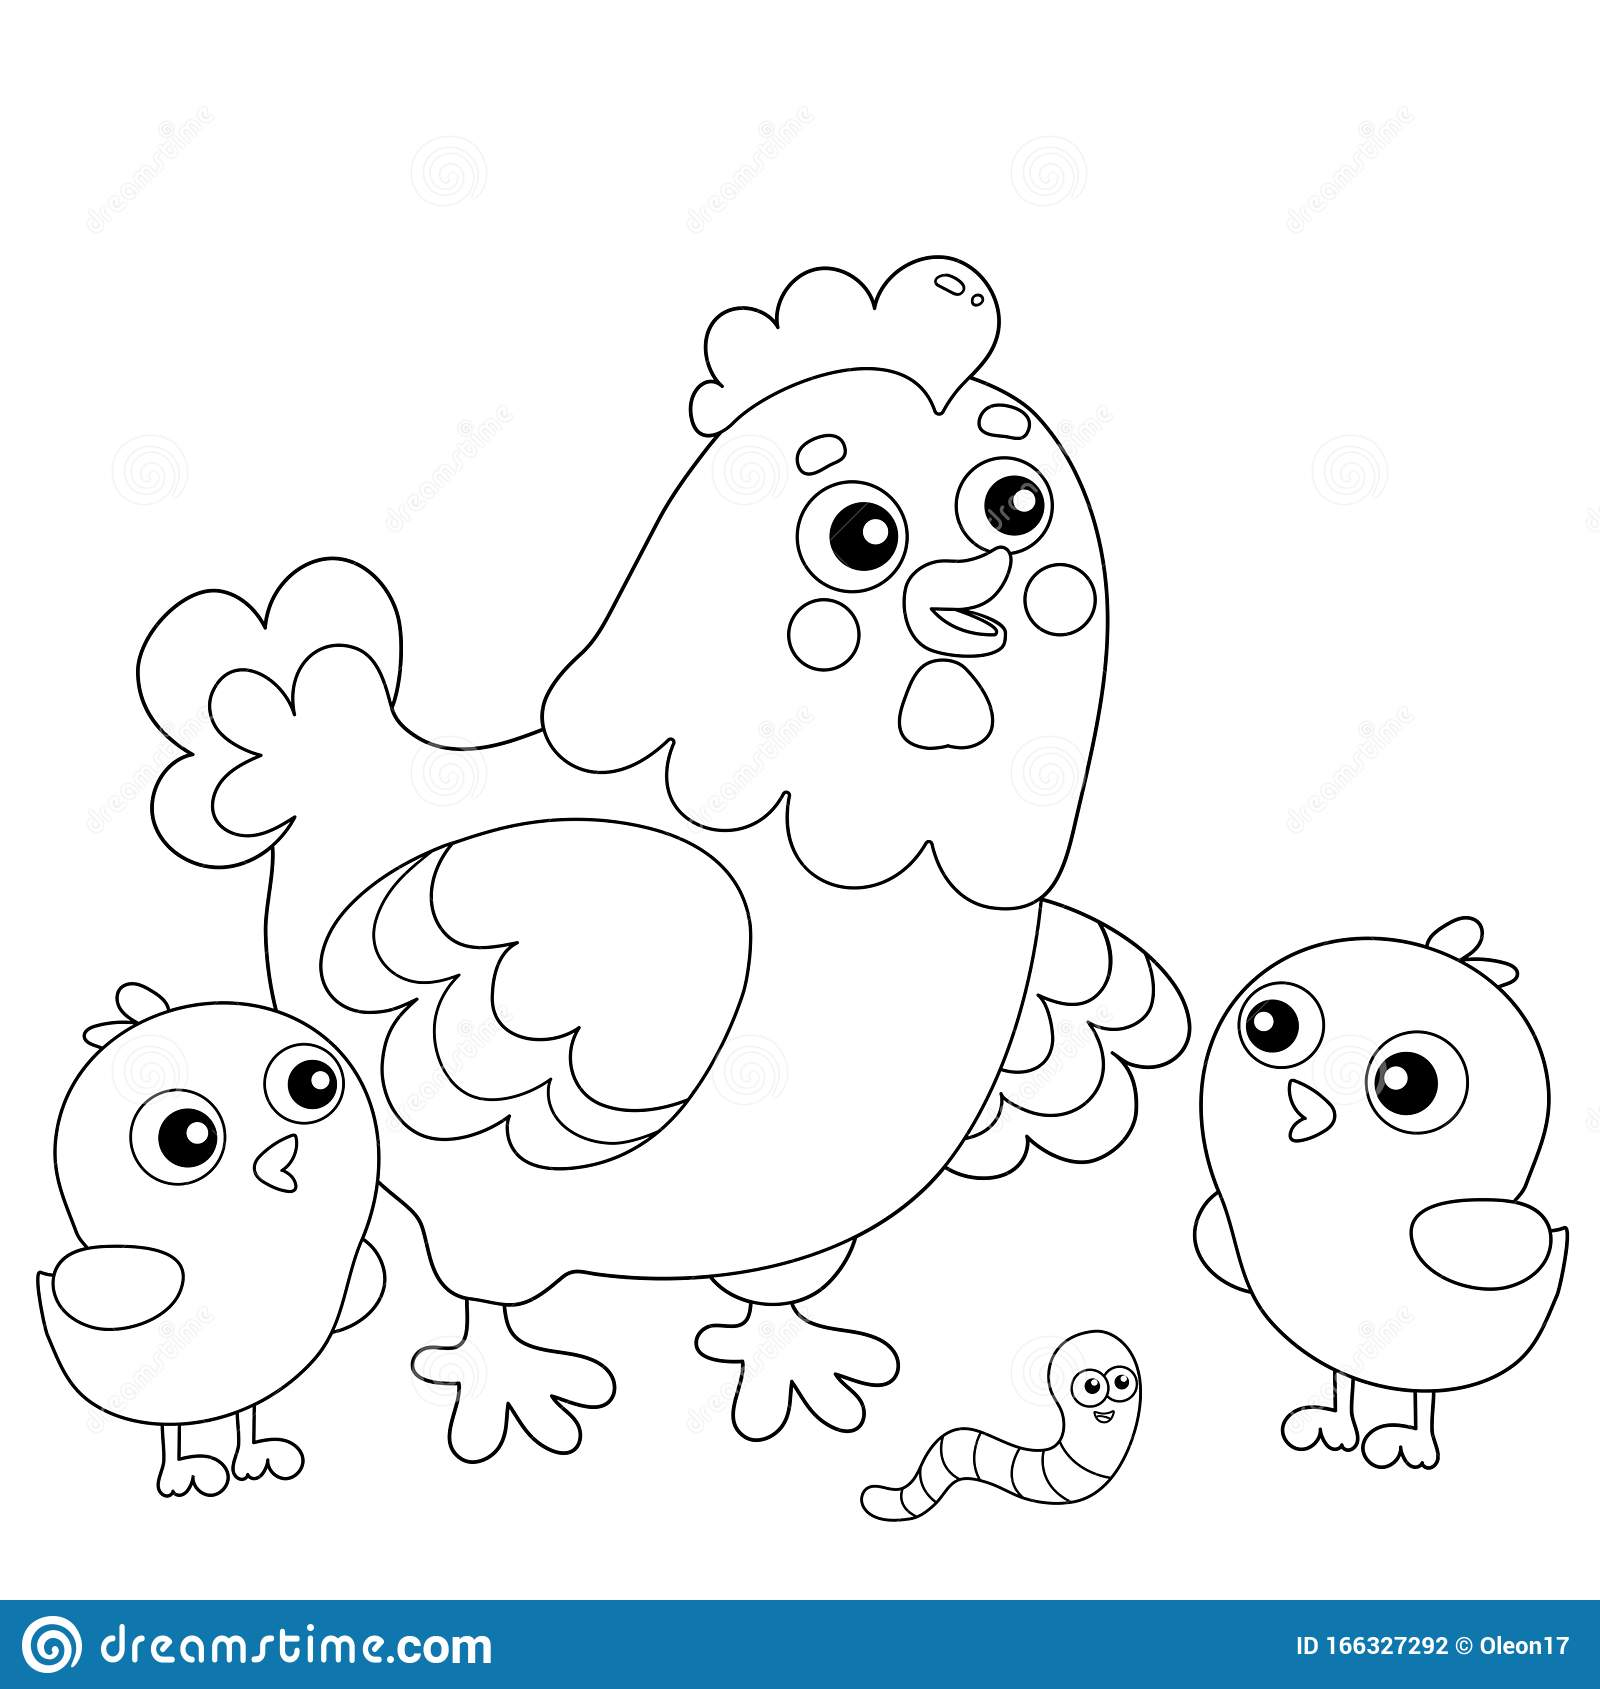 - Coloring Page Outline Of Cartoon Chicken Or Hen With Chicks. Farm